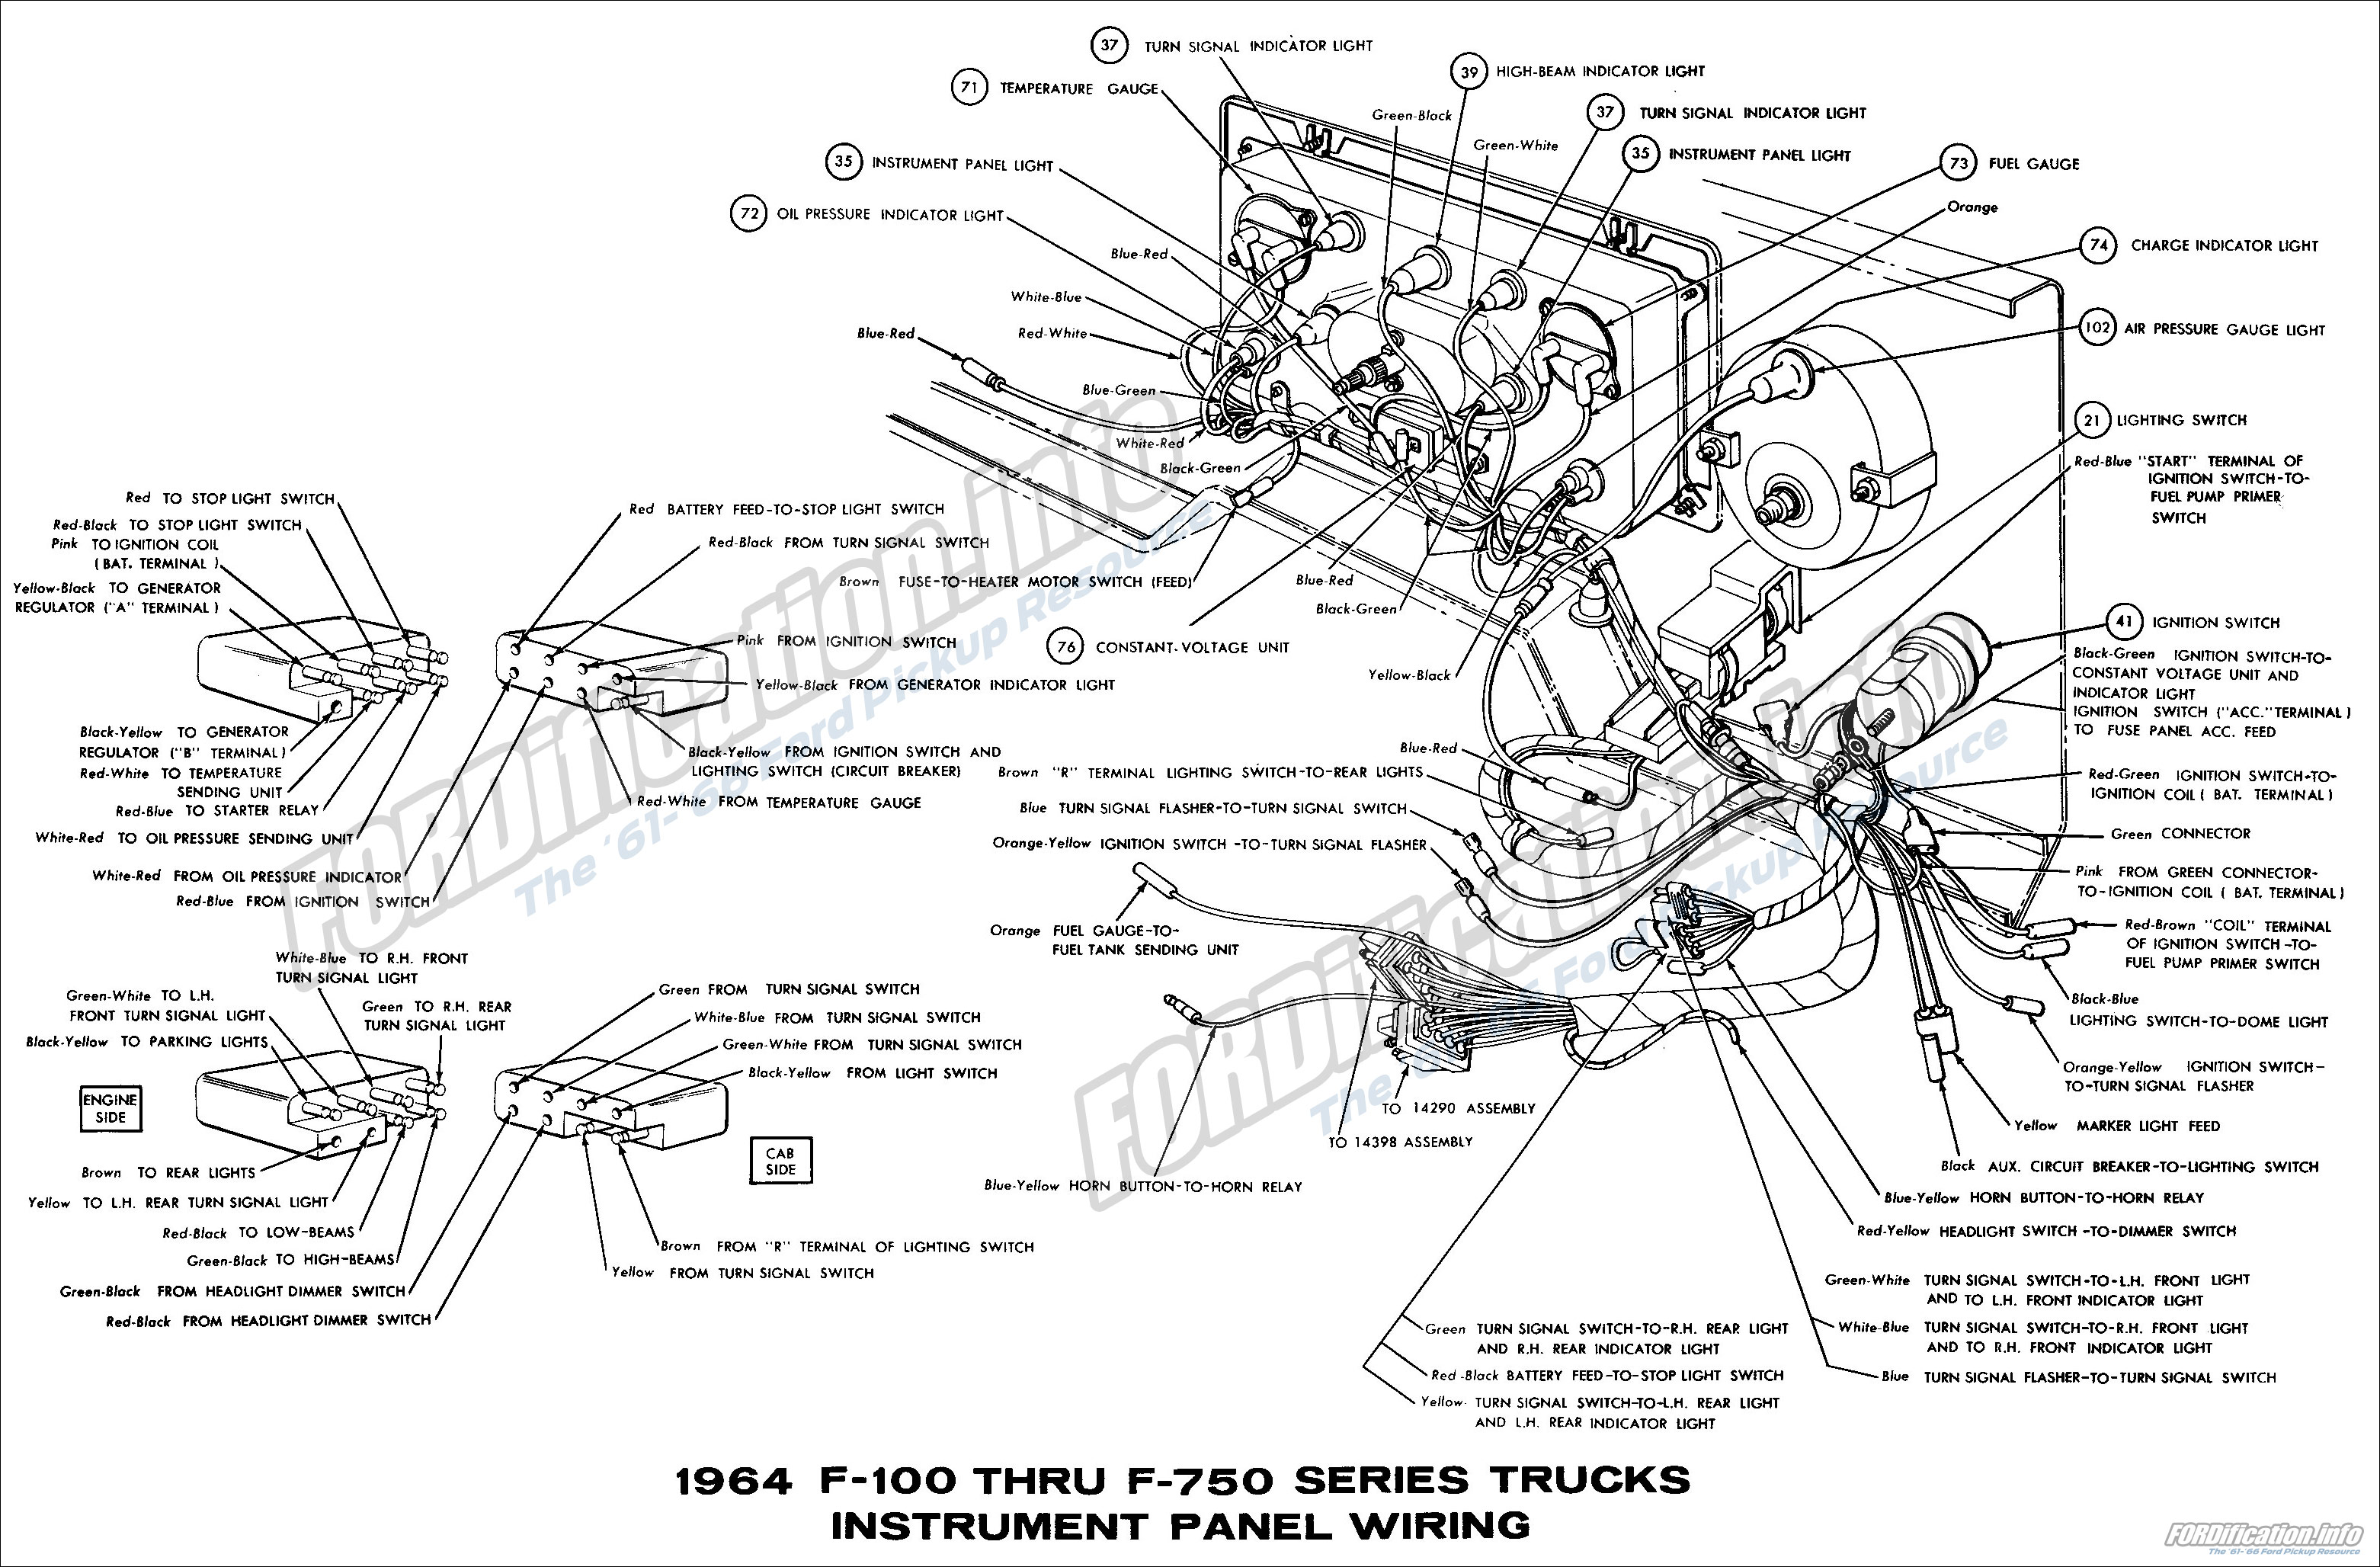 1964_02 1964 ford truck wiring diagrams fordification info the '61 '66 ford truck wiring schematics at alyssarenee.co